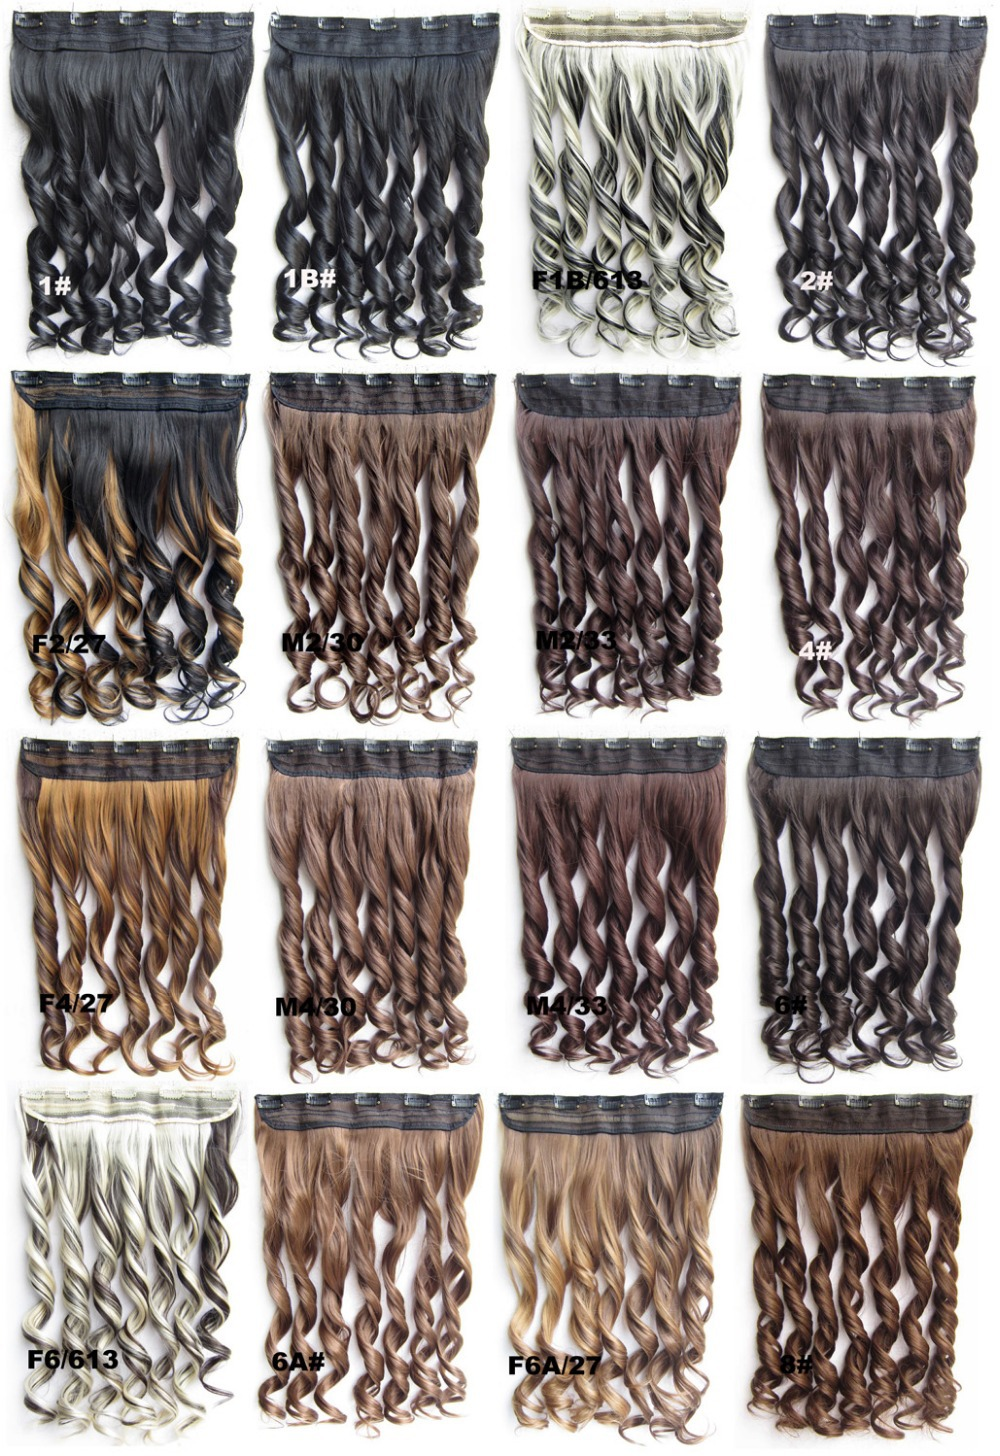 5 clips synthetic wavy hairpiece hair extension ponytail 100 colors available 60cm 130gram 1s - Shelly Dai's store